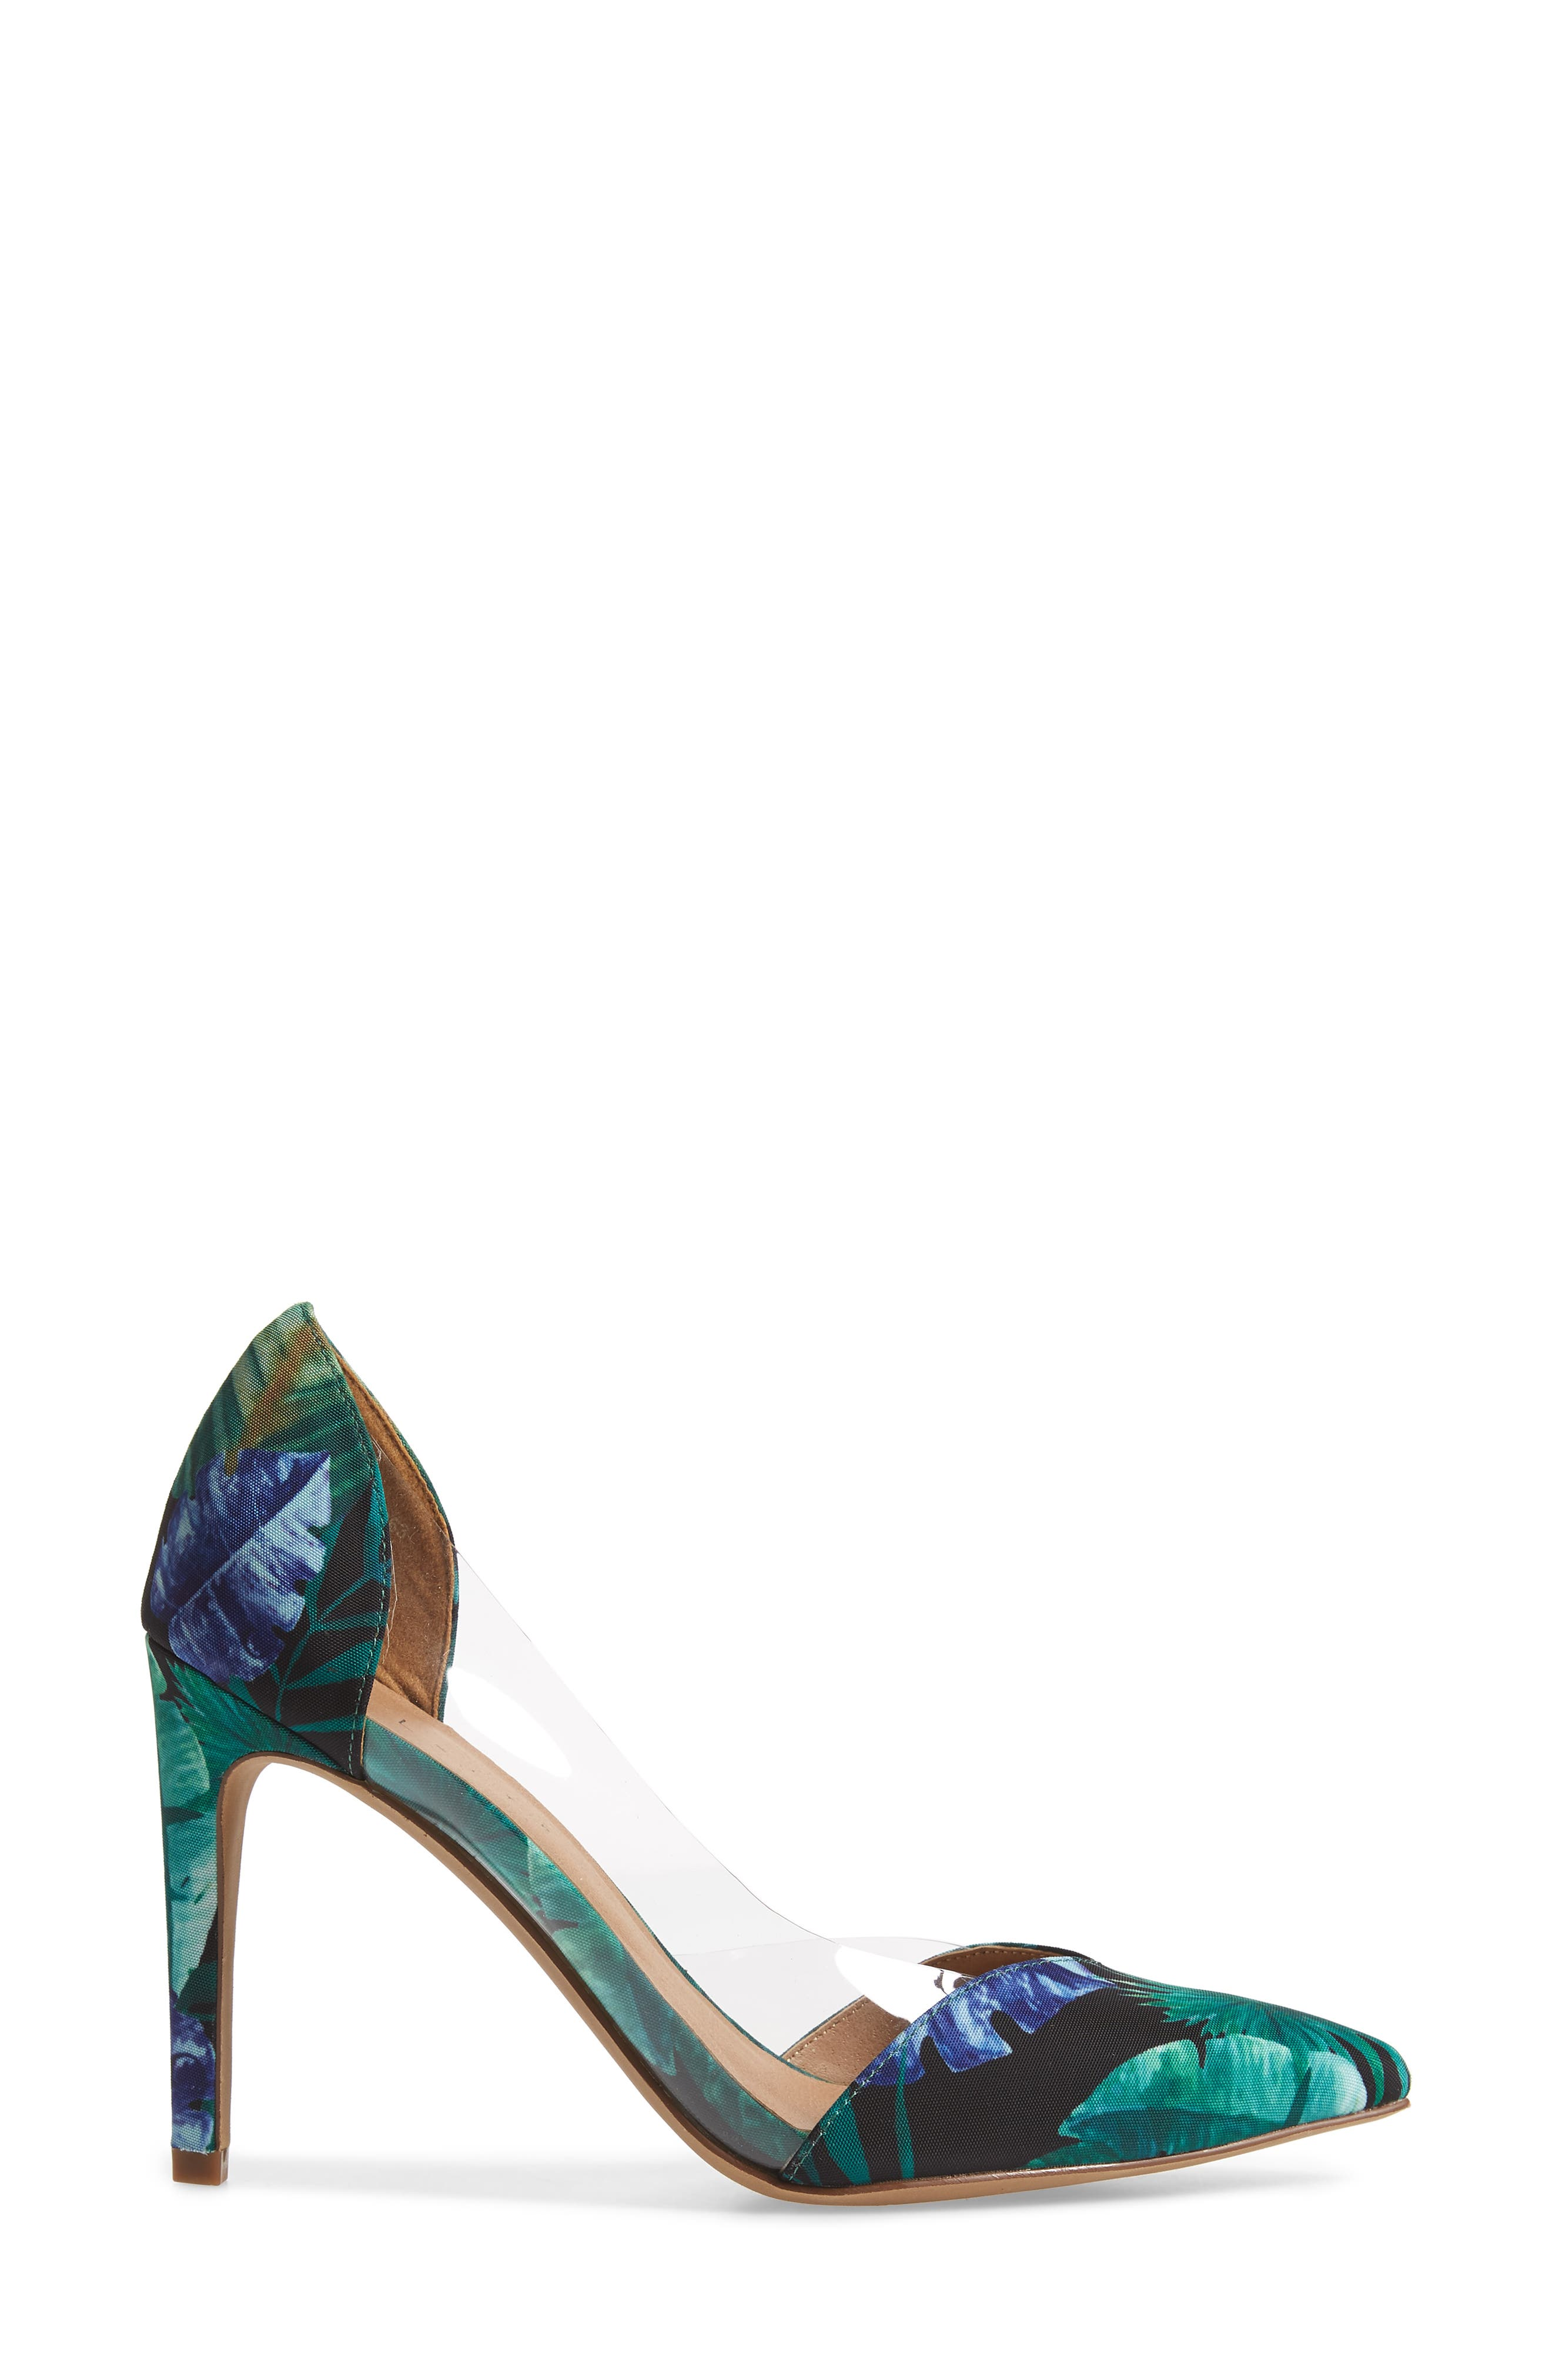 Parker Clear d'Orsay Pump,                             Alternate thumbnail 3, color,                             Green Multi Fabric Print